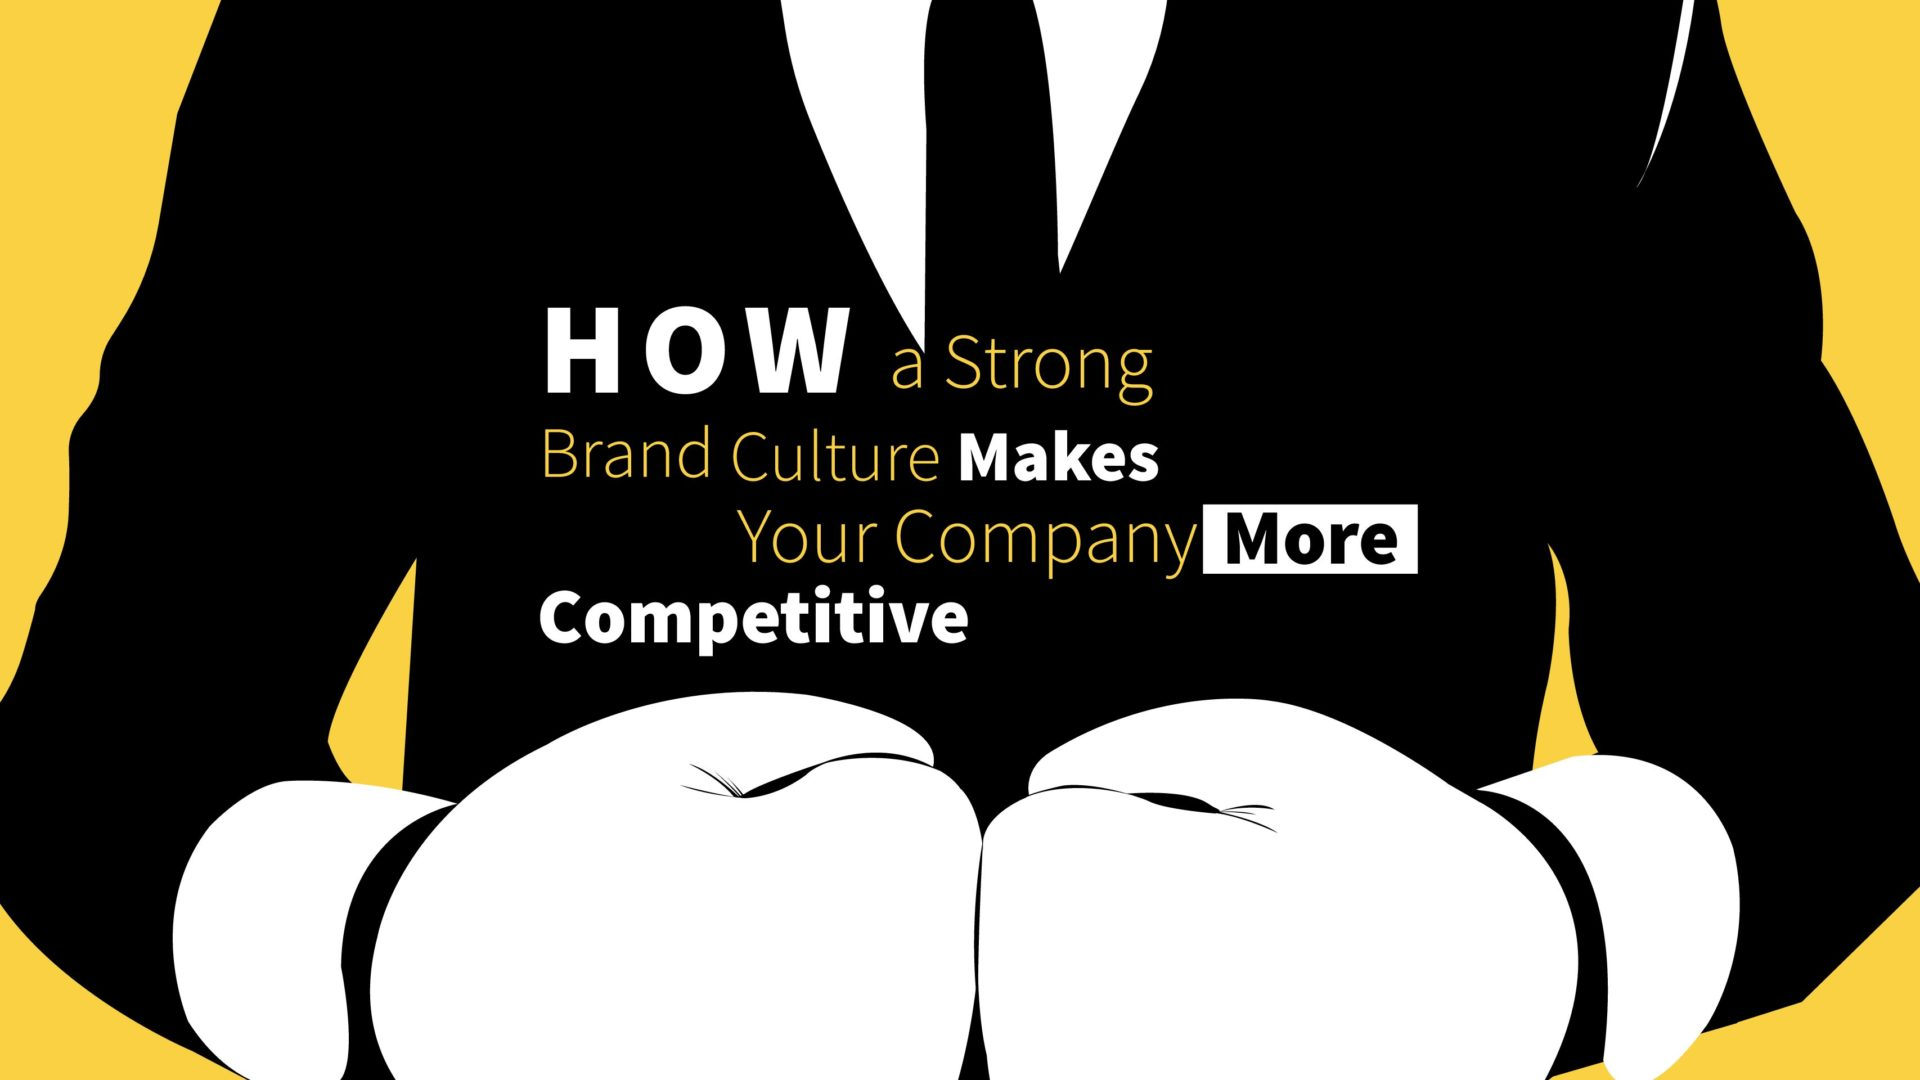 How a Strong Brand Culture Makes your Company More Competitive